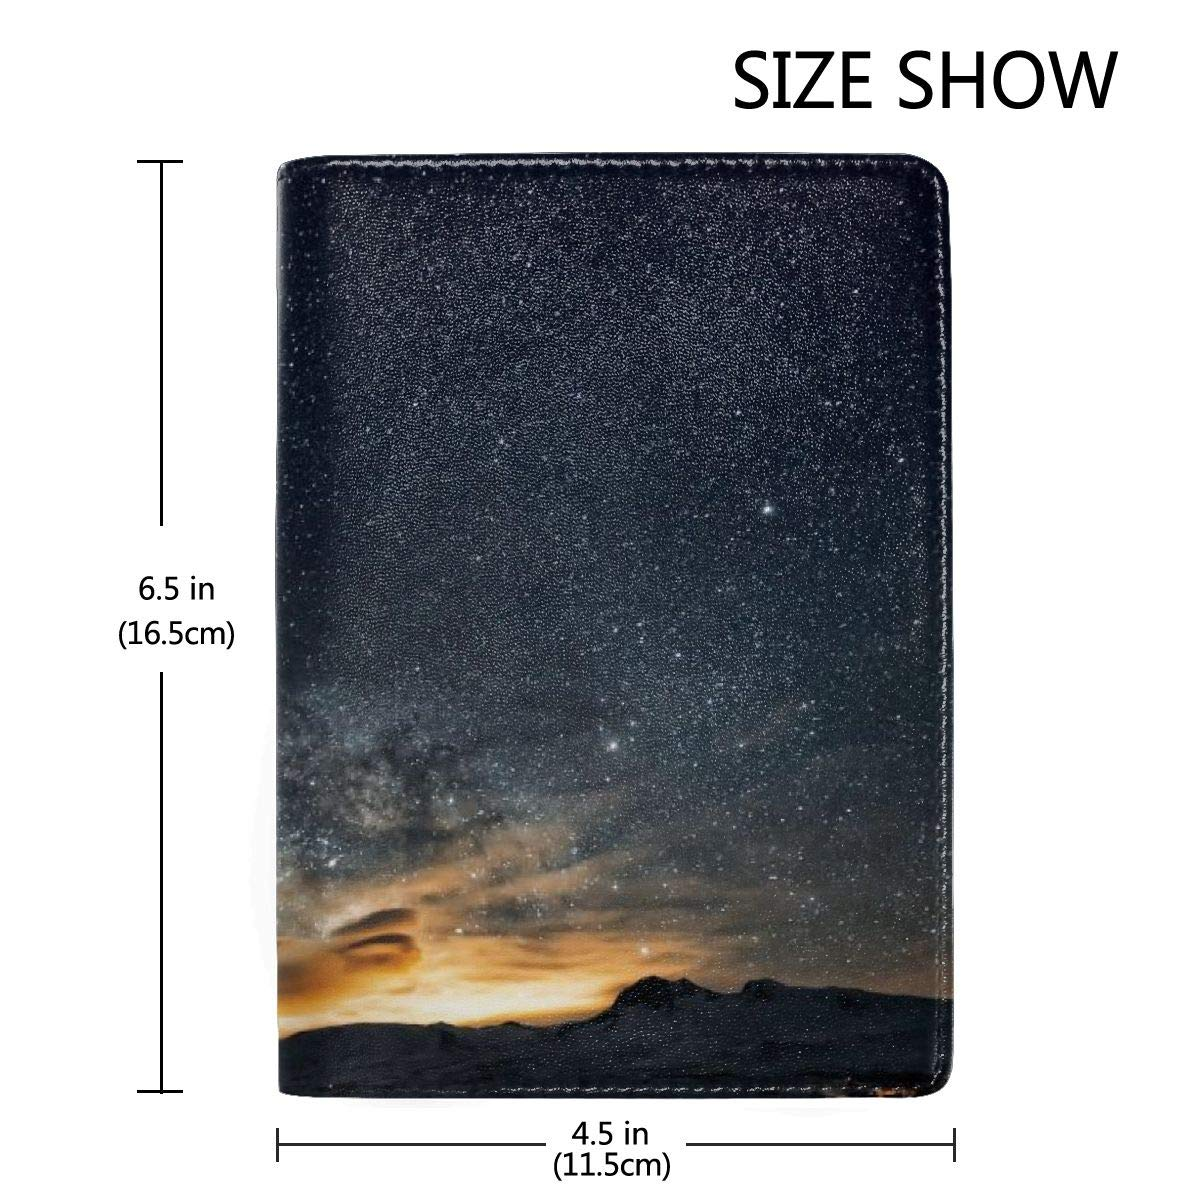 Galaxy Stars Fashion Leather Passport Holder Cover Case Travel Wallet 6.5 In